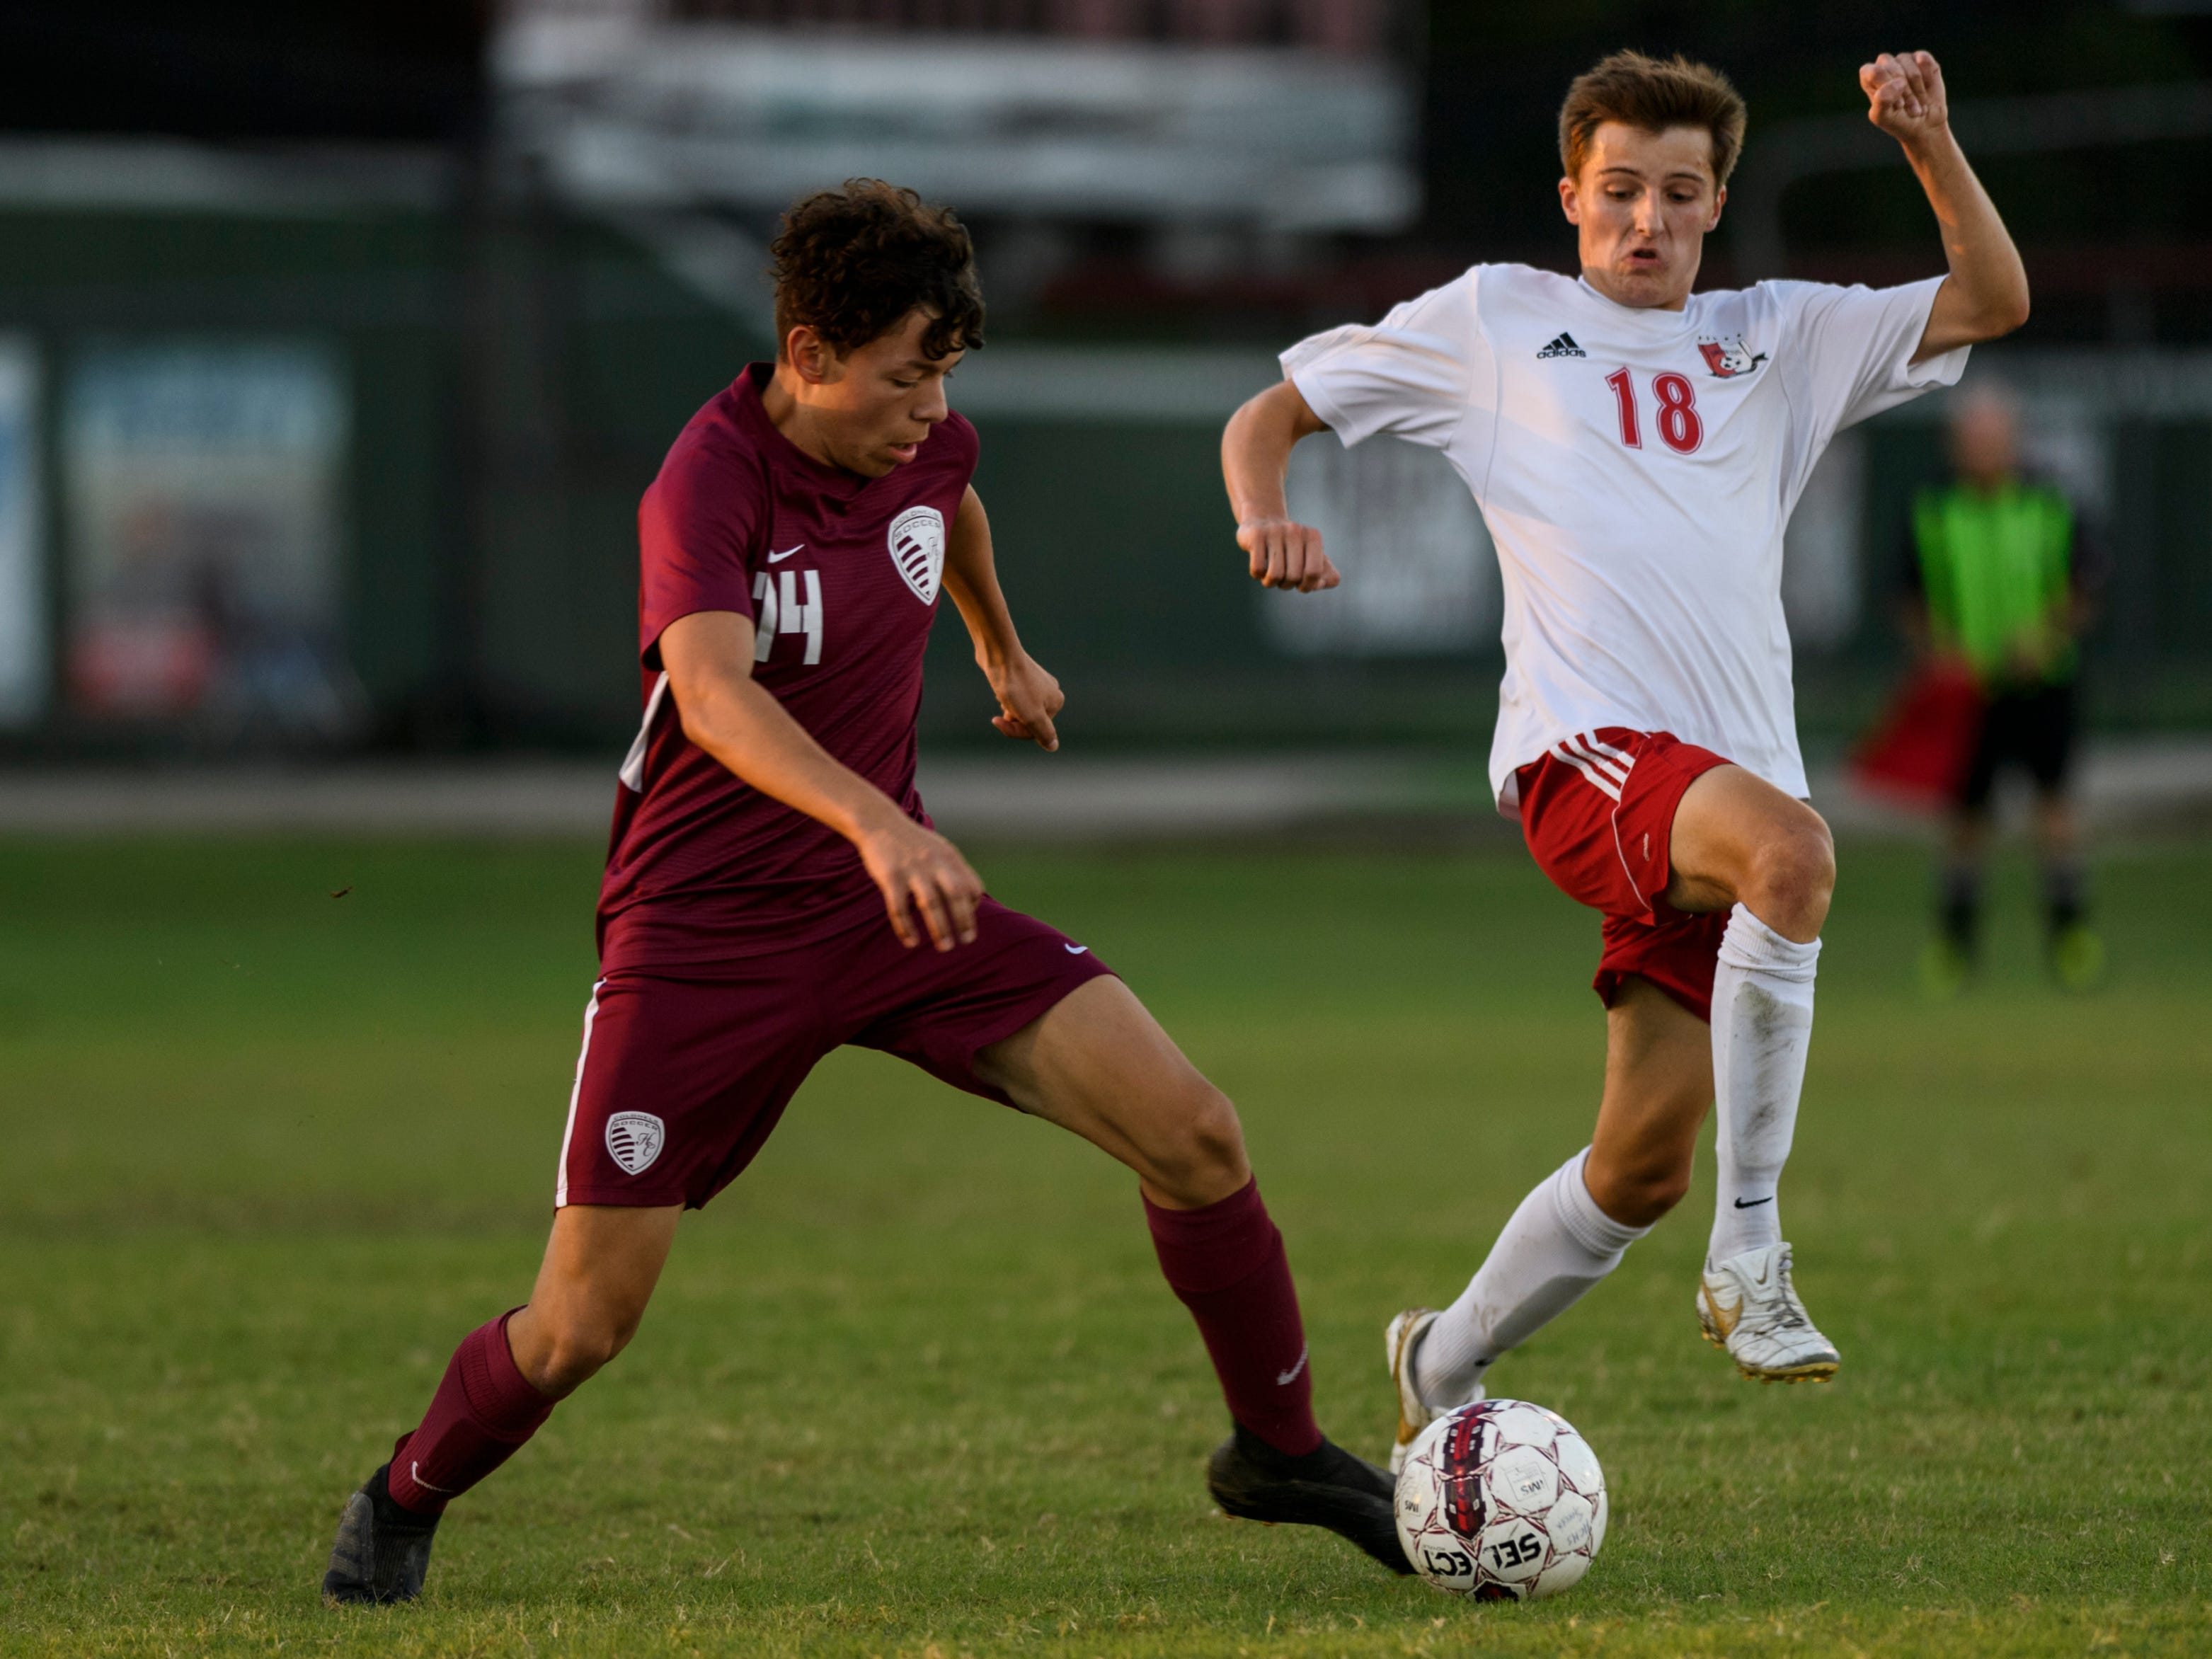 Henderson County's Jordan Toribio (14) keeps the ball from Daviess County's Declan Armistead (18) during the first half at Colonel Field in Henderson, Ky., Thursday, Sept. 27, 2018. The Panthers defeated the Colonels 5-3.